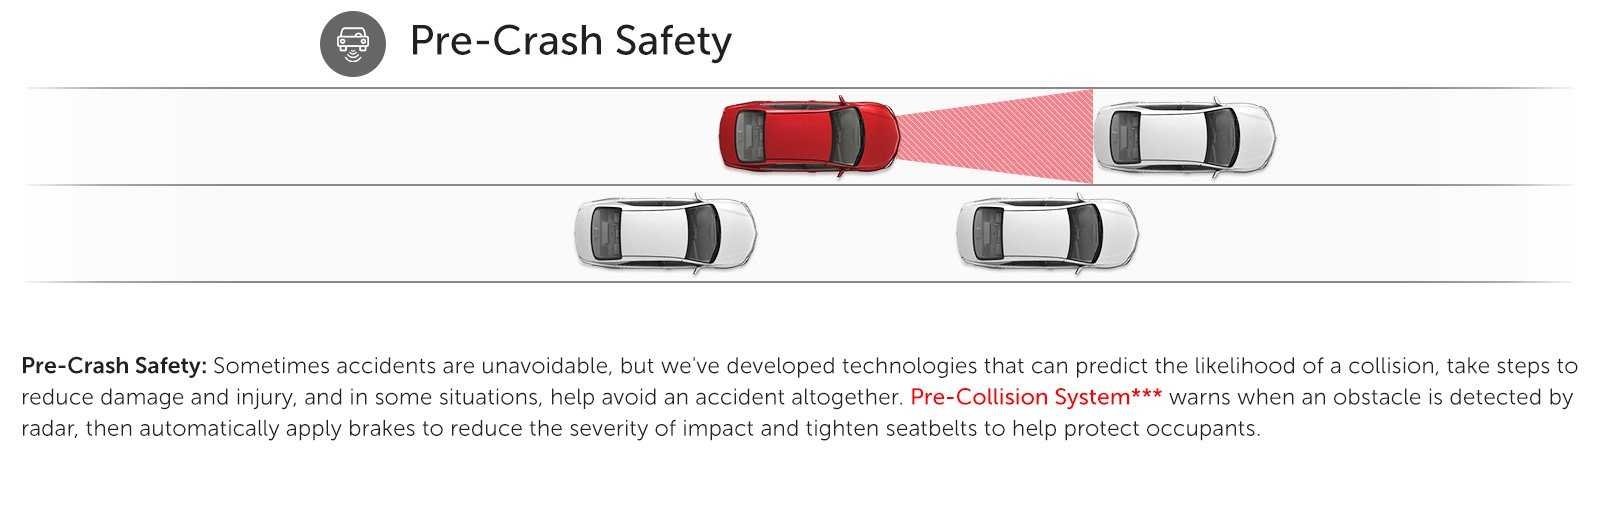 Toyota Safety Sense - Pre-Crash Safety